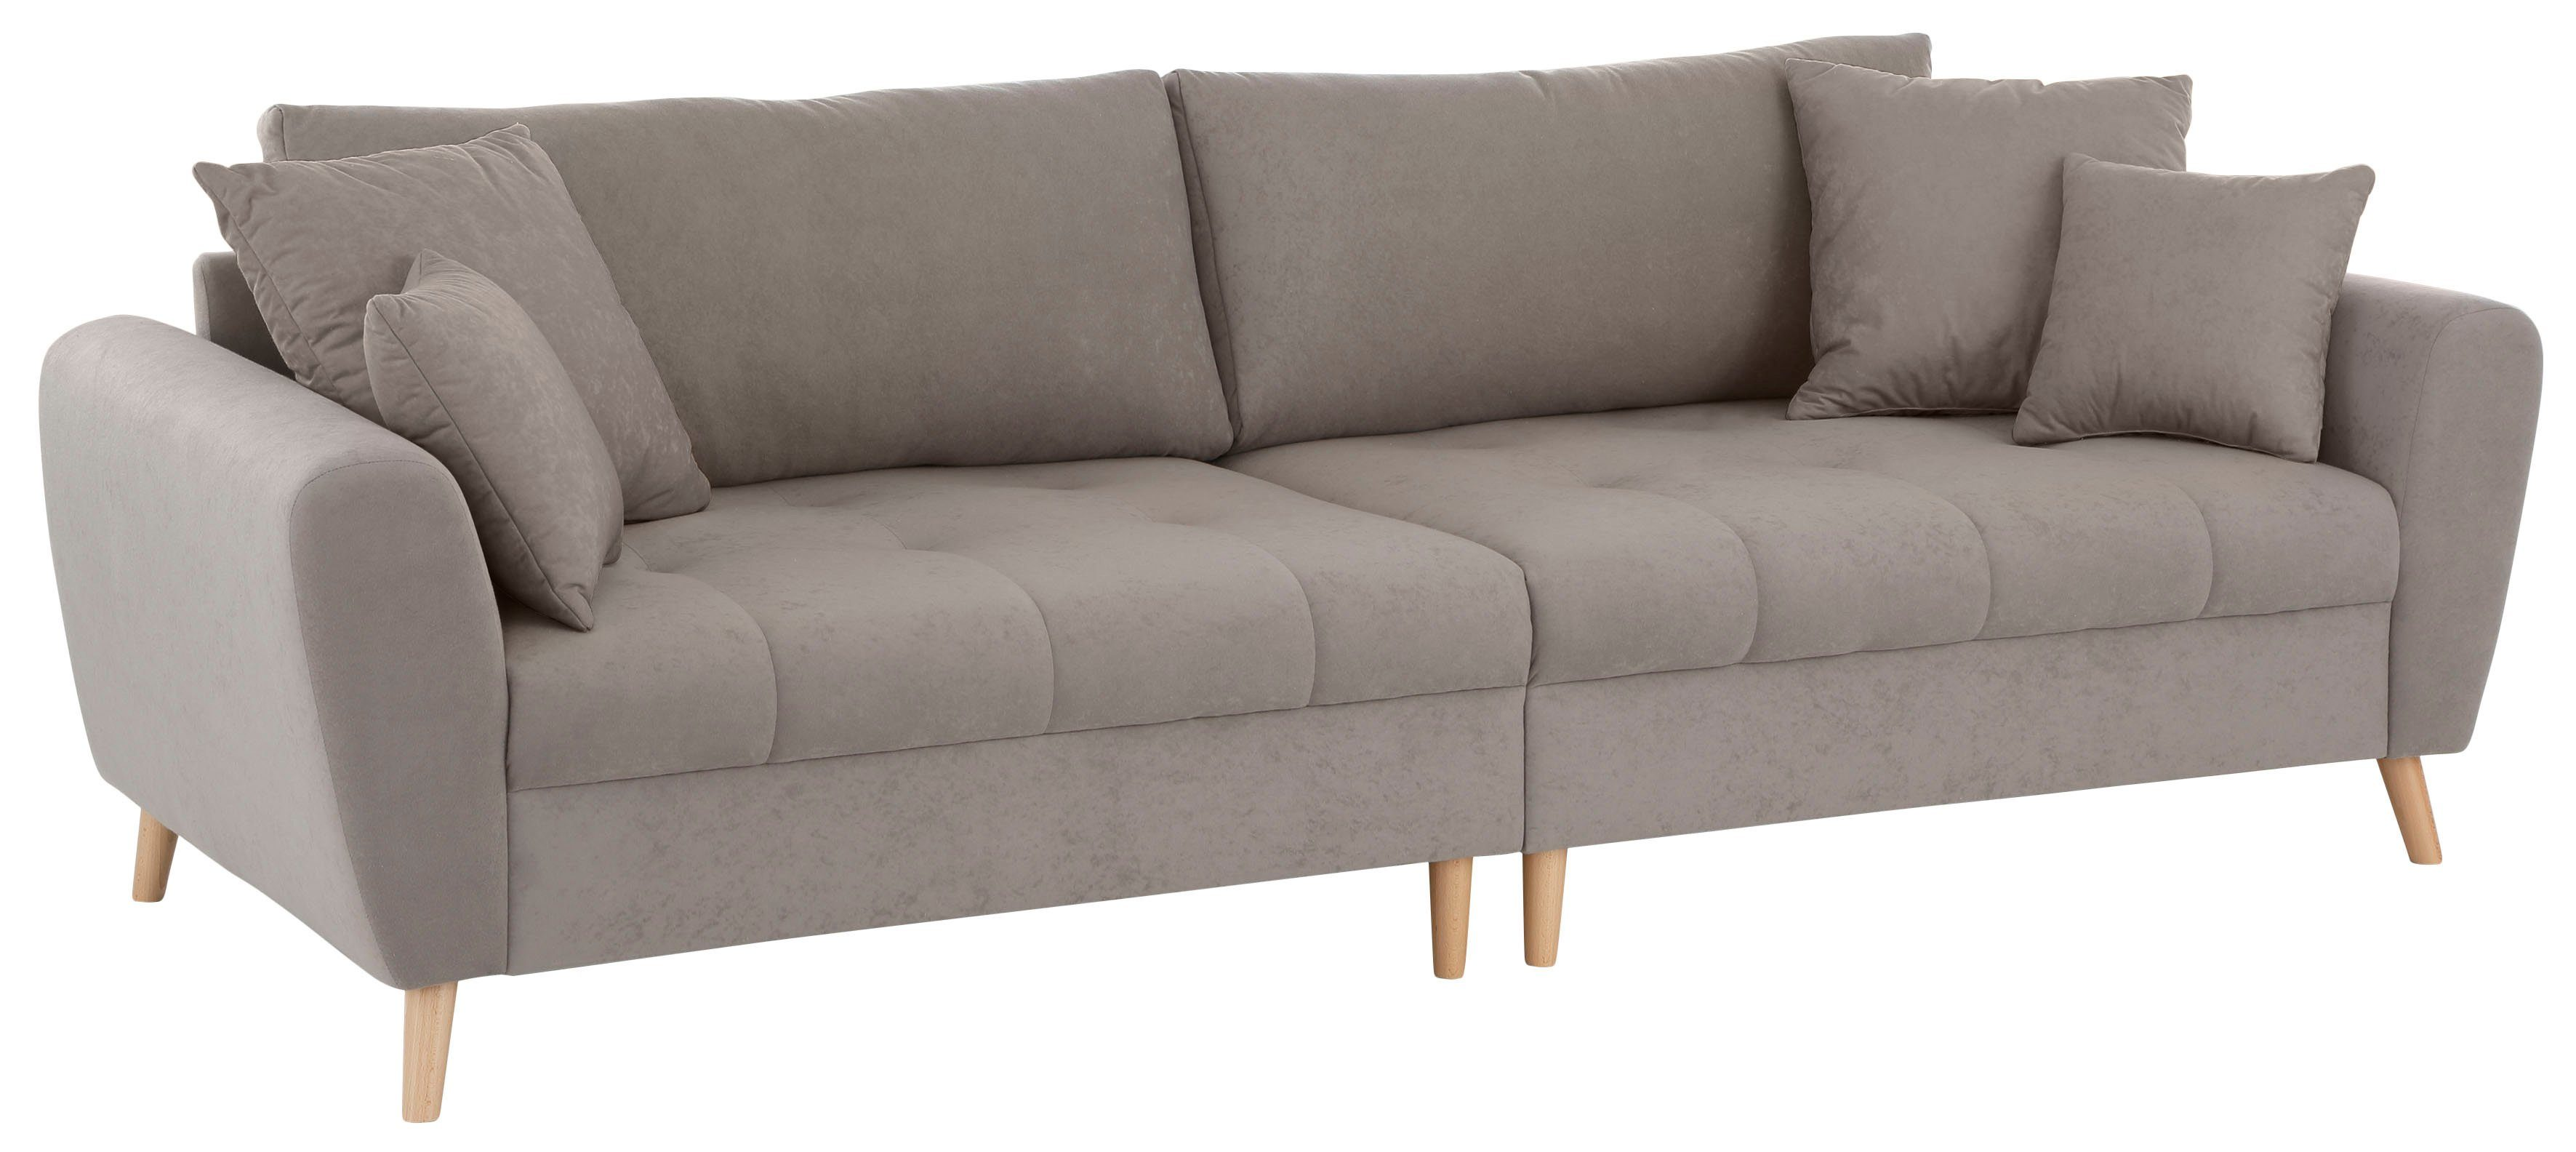 Home Affaire Big Sofa Blackburn Luxus Mit Besonders - Otto Sofa Home Affaire